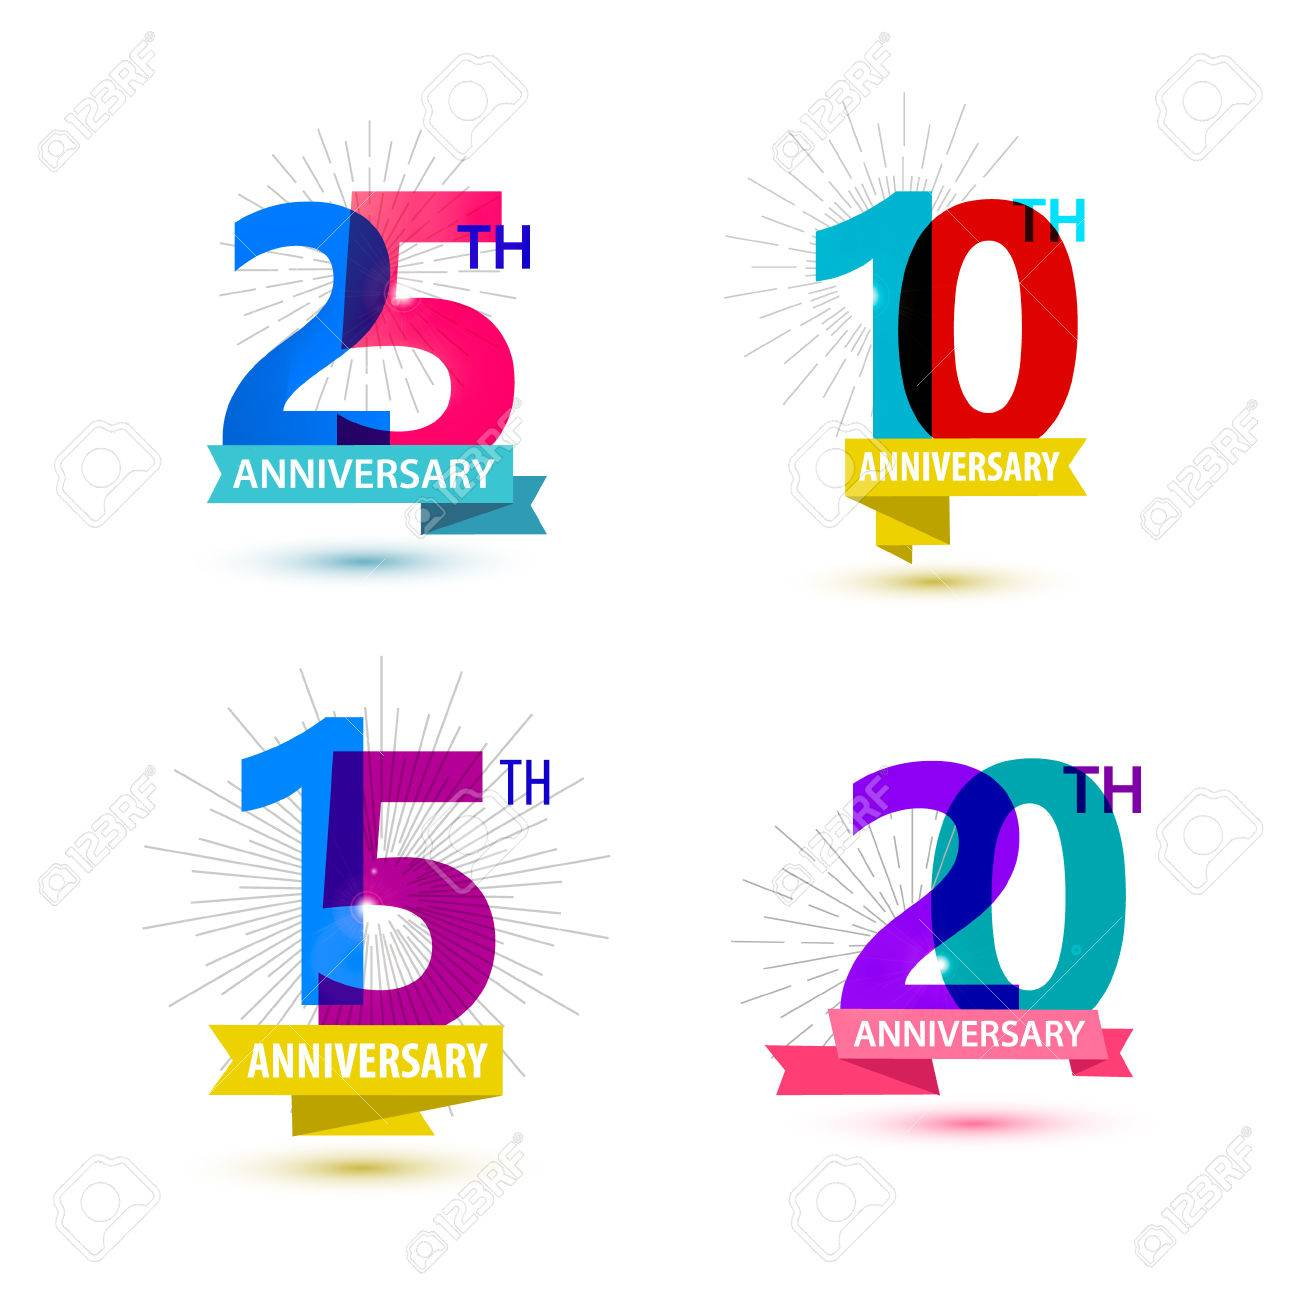 Vector set of anniversary numbers design. 25, 10, 15, 20 icons, compositions with ribbons. Colorful, transparent with shadows on white background isolated - 49787419